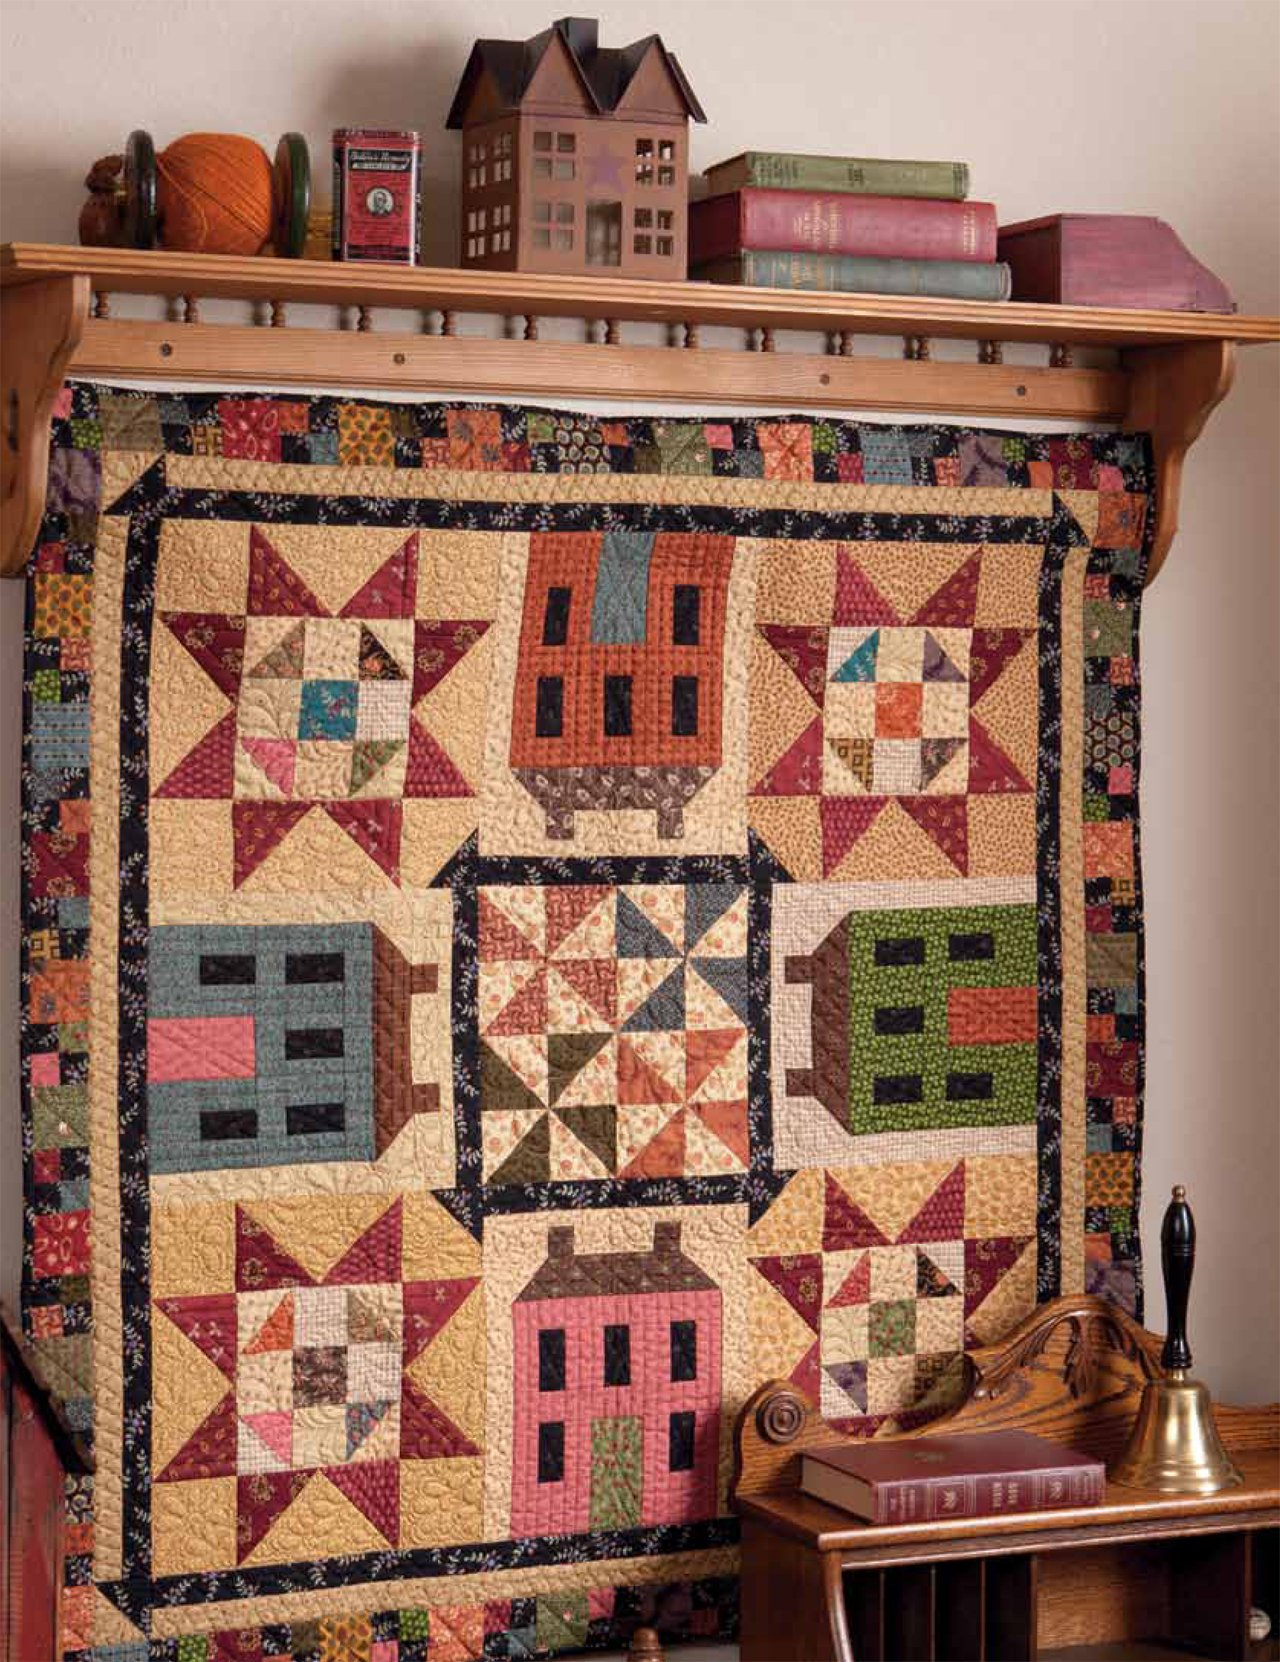 Simple Charm: 12 Scrappy Patchwork and Applique Quilt Patterns: Kim Diehl:  0744527111084: Amazon.com: Books